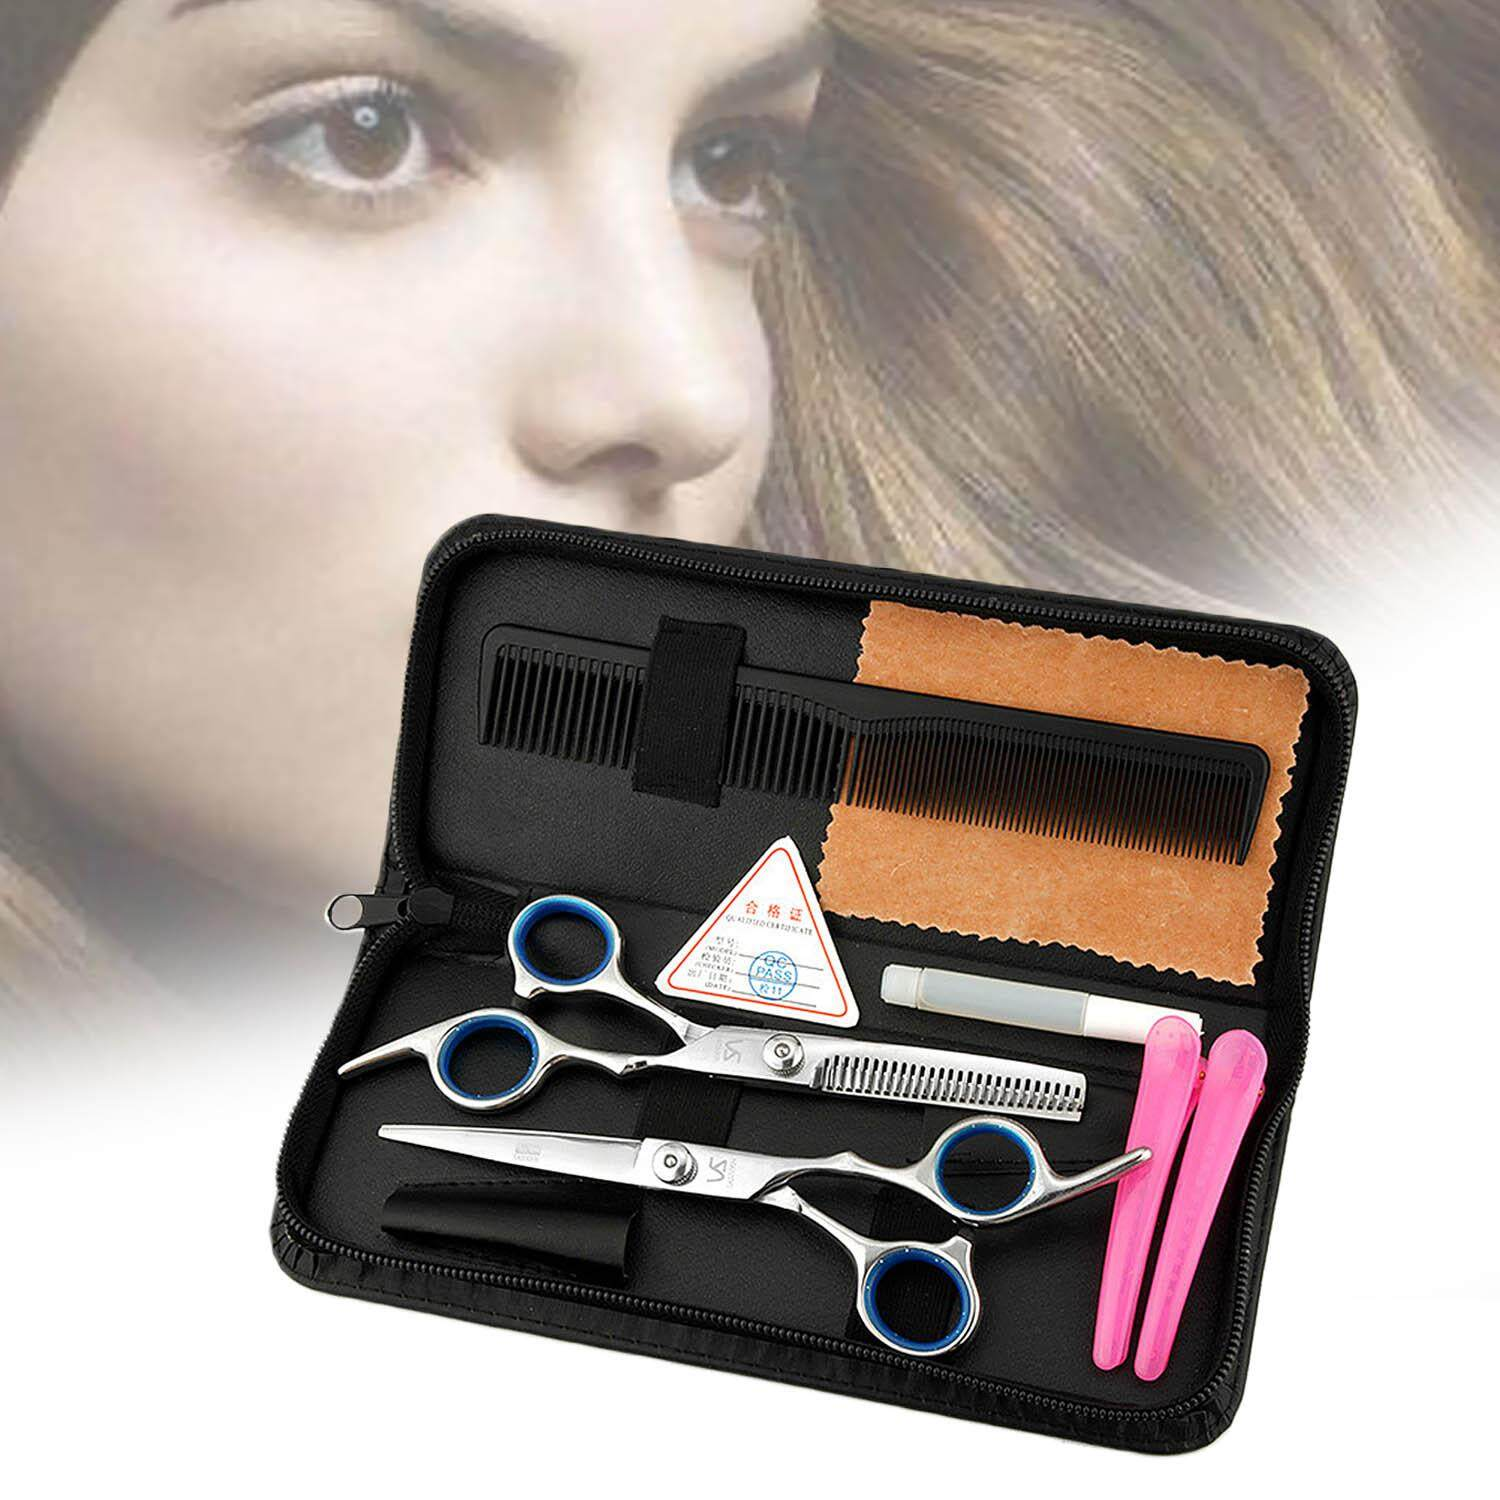 7pcs Professional Hairdressing Scissors Tools Kit Comb Hair Clip With Storage Bag Case For Family Home Hair Cutting - Intl By Stoneky.